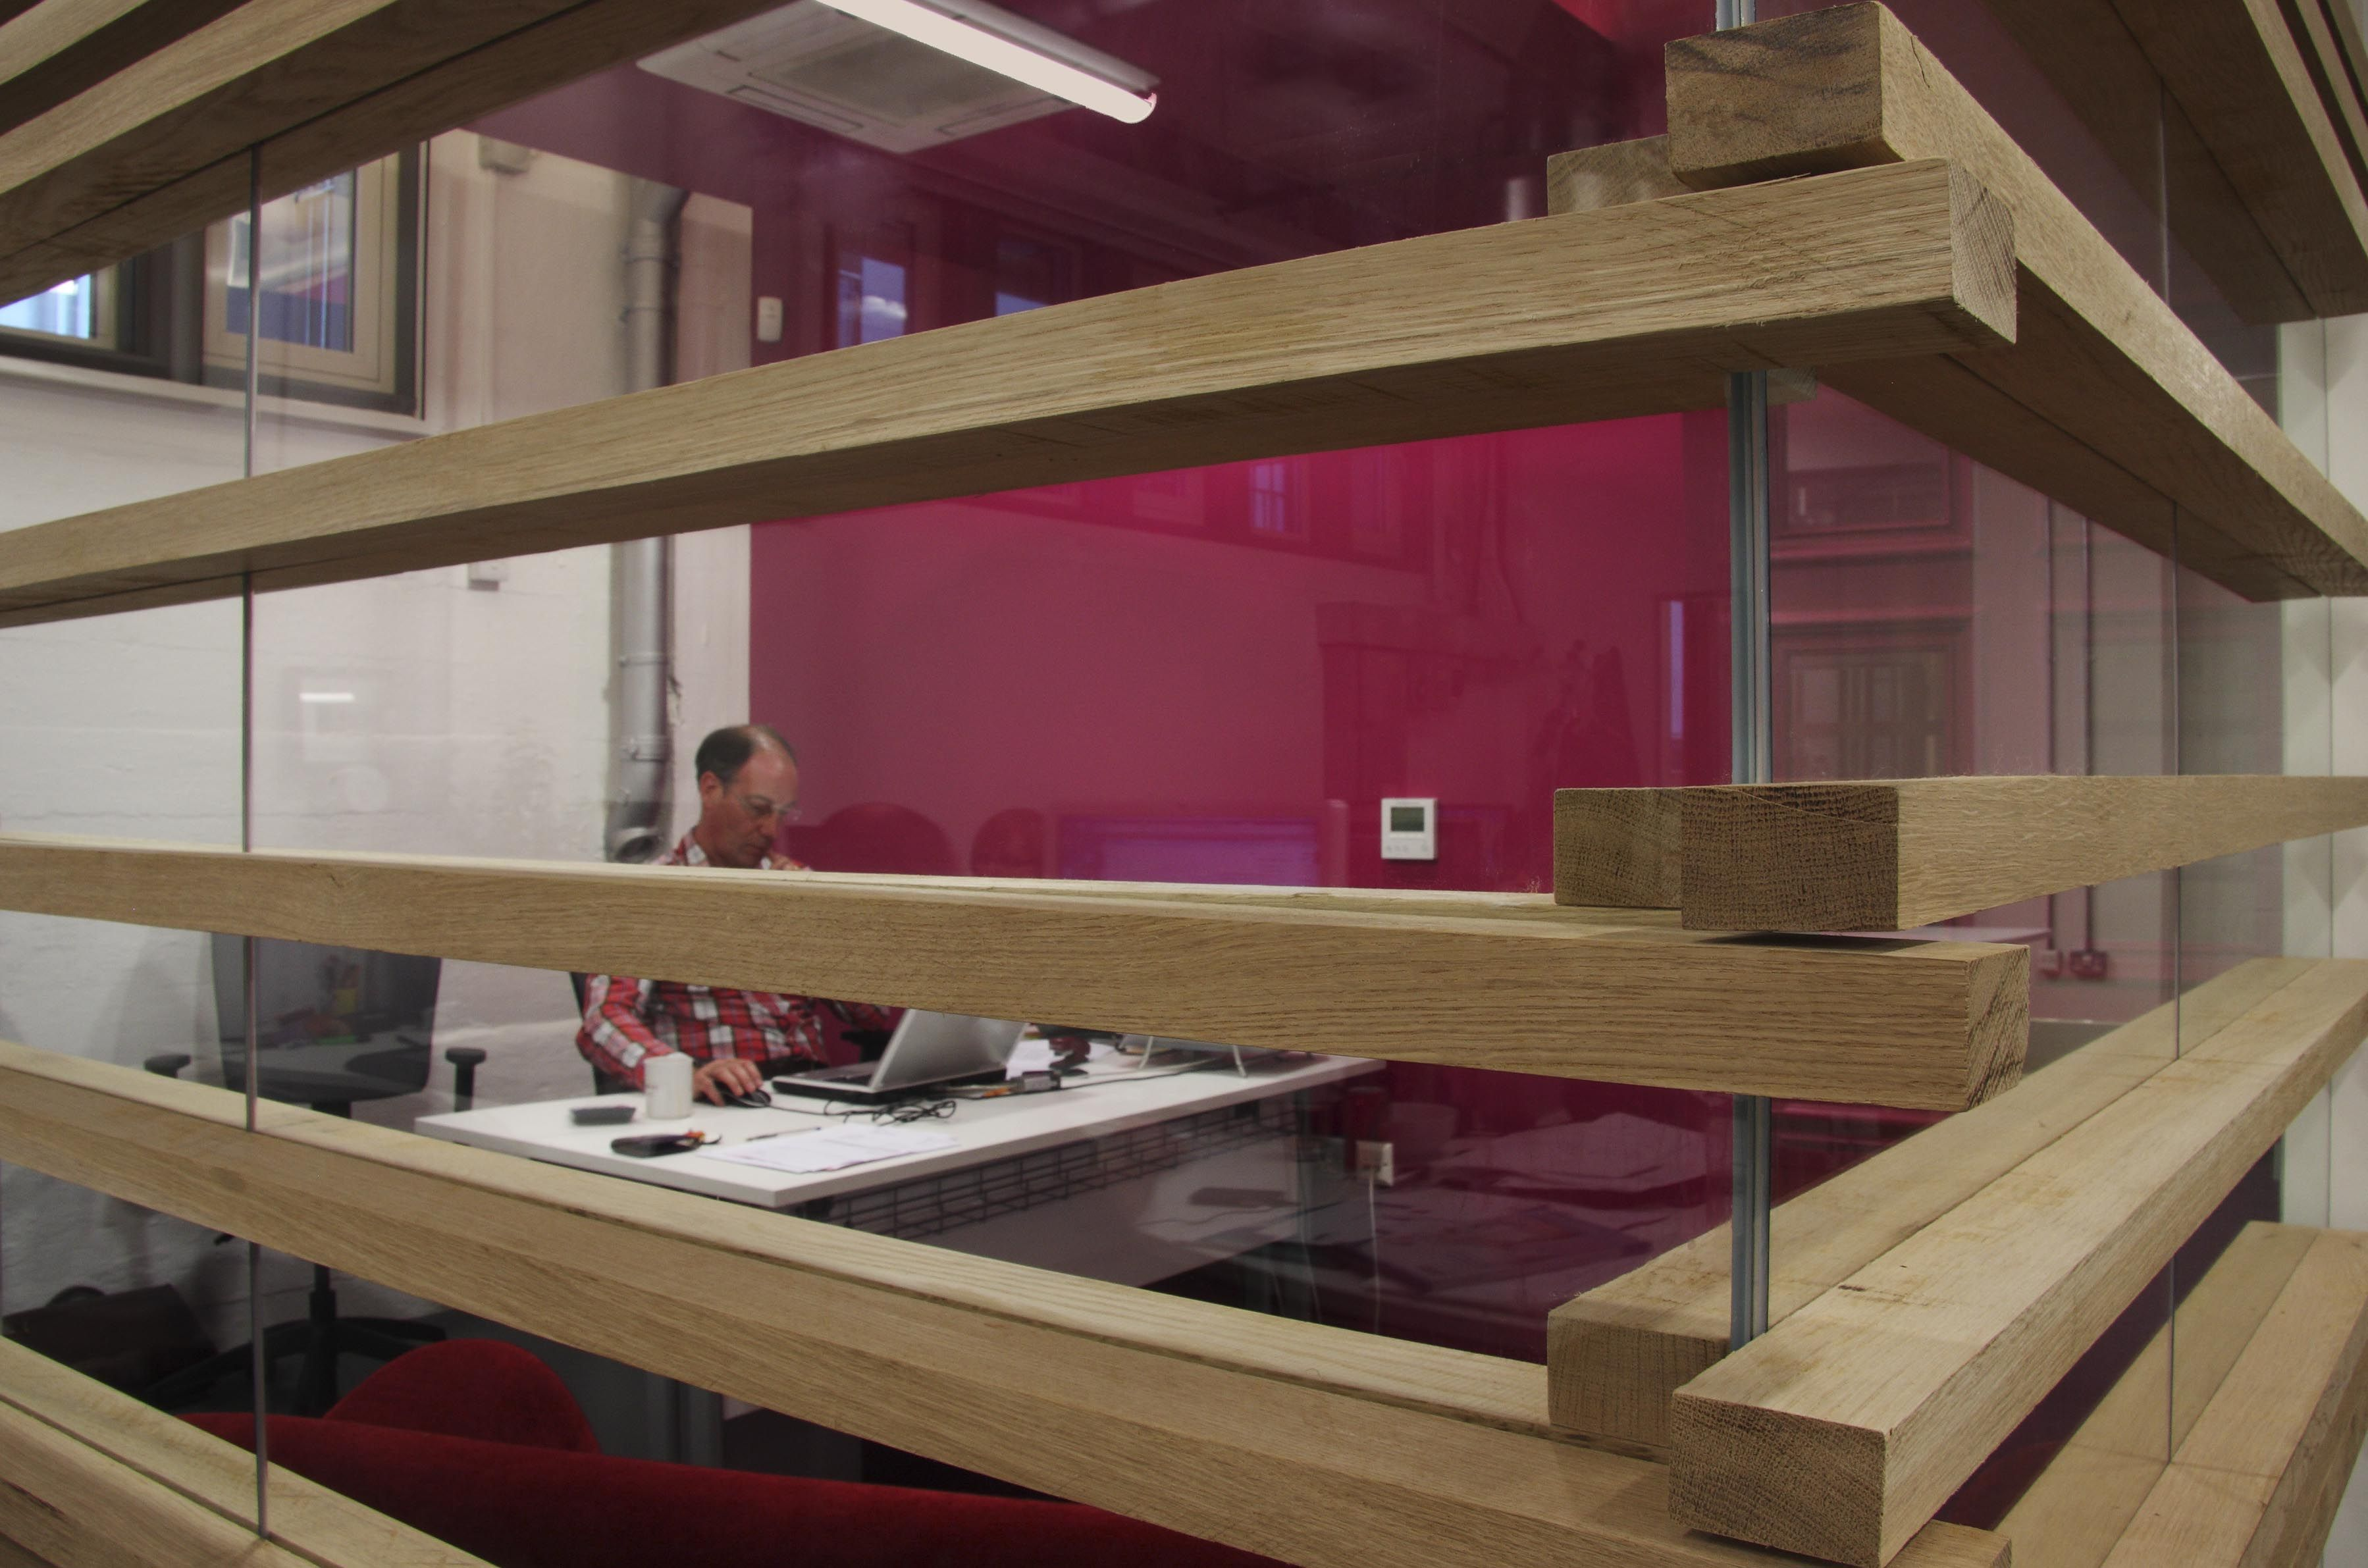 Highlighting the wooden slats and glass partitioning in more detail. Copyright: Workplace Creations Ltd.